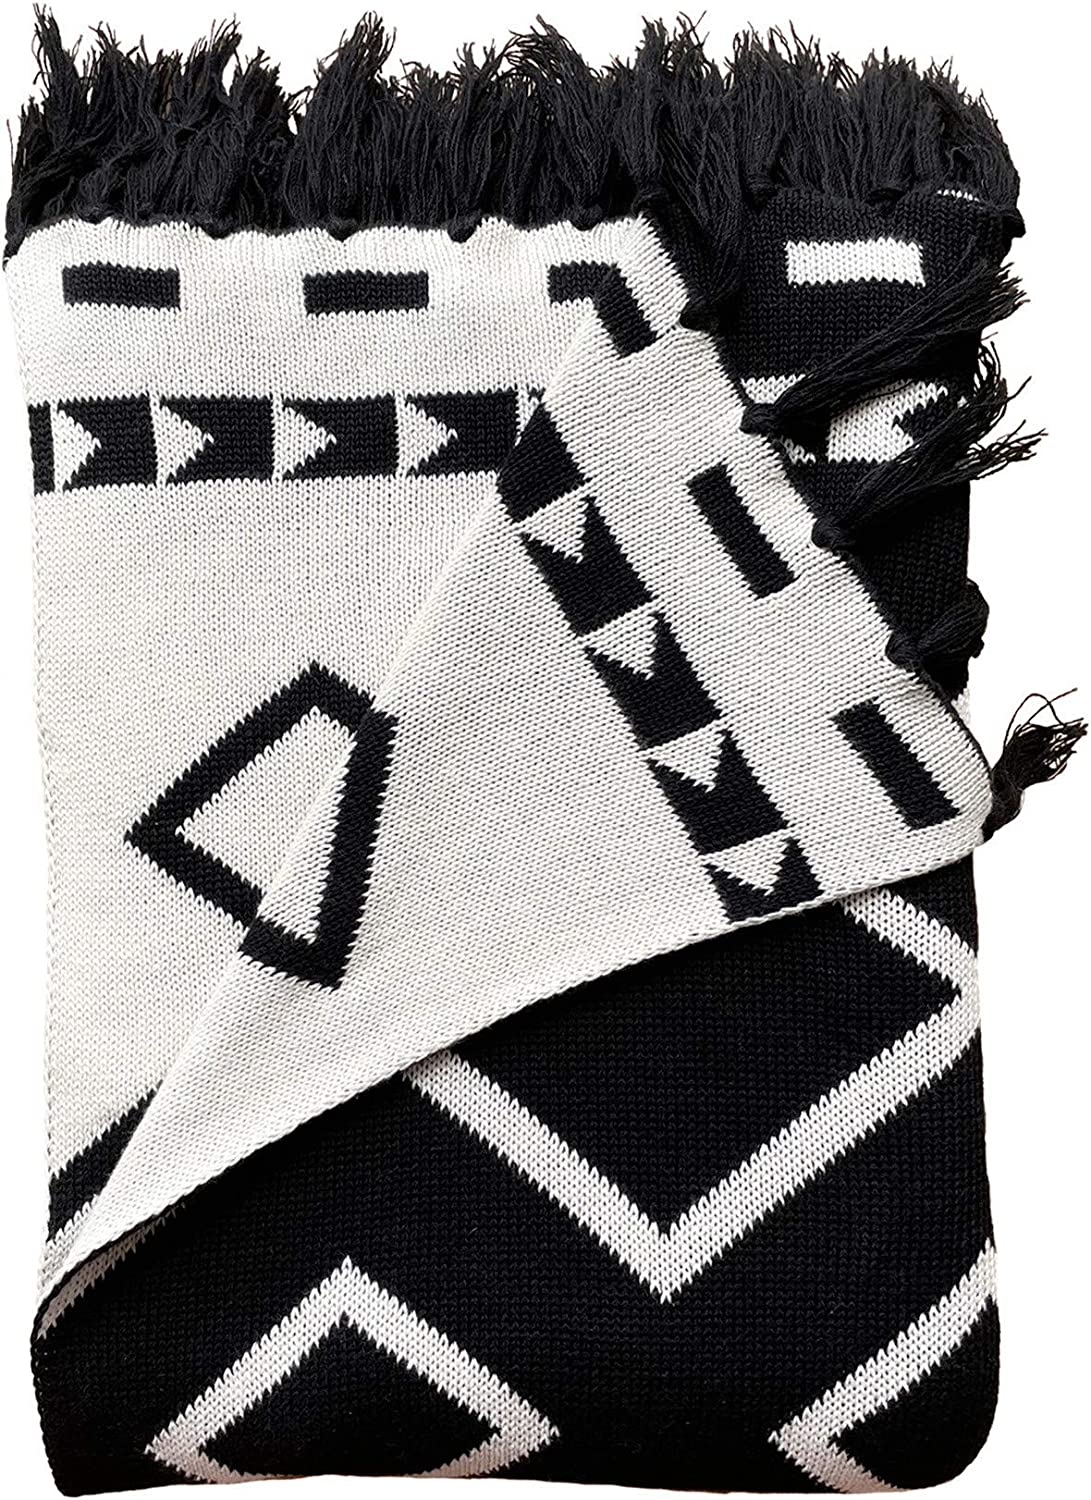 Snugtown 100% Cotton Cable Knit Double Layer Warm Cozy Throw Blanket, Nordic Diamond Pattern Home Decorative Blanket Throw with Tassels for Couch Chairs Bed, Black and White, 50 x 60 Inches